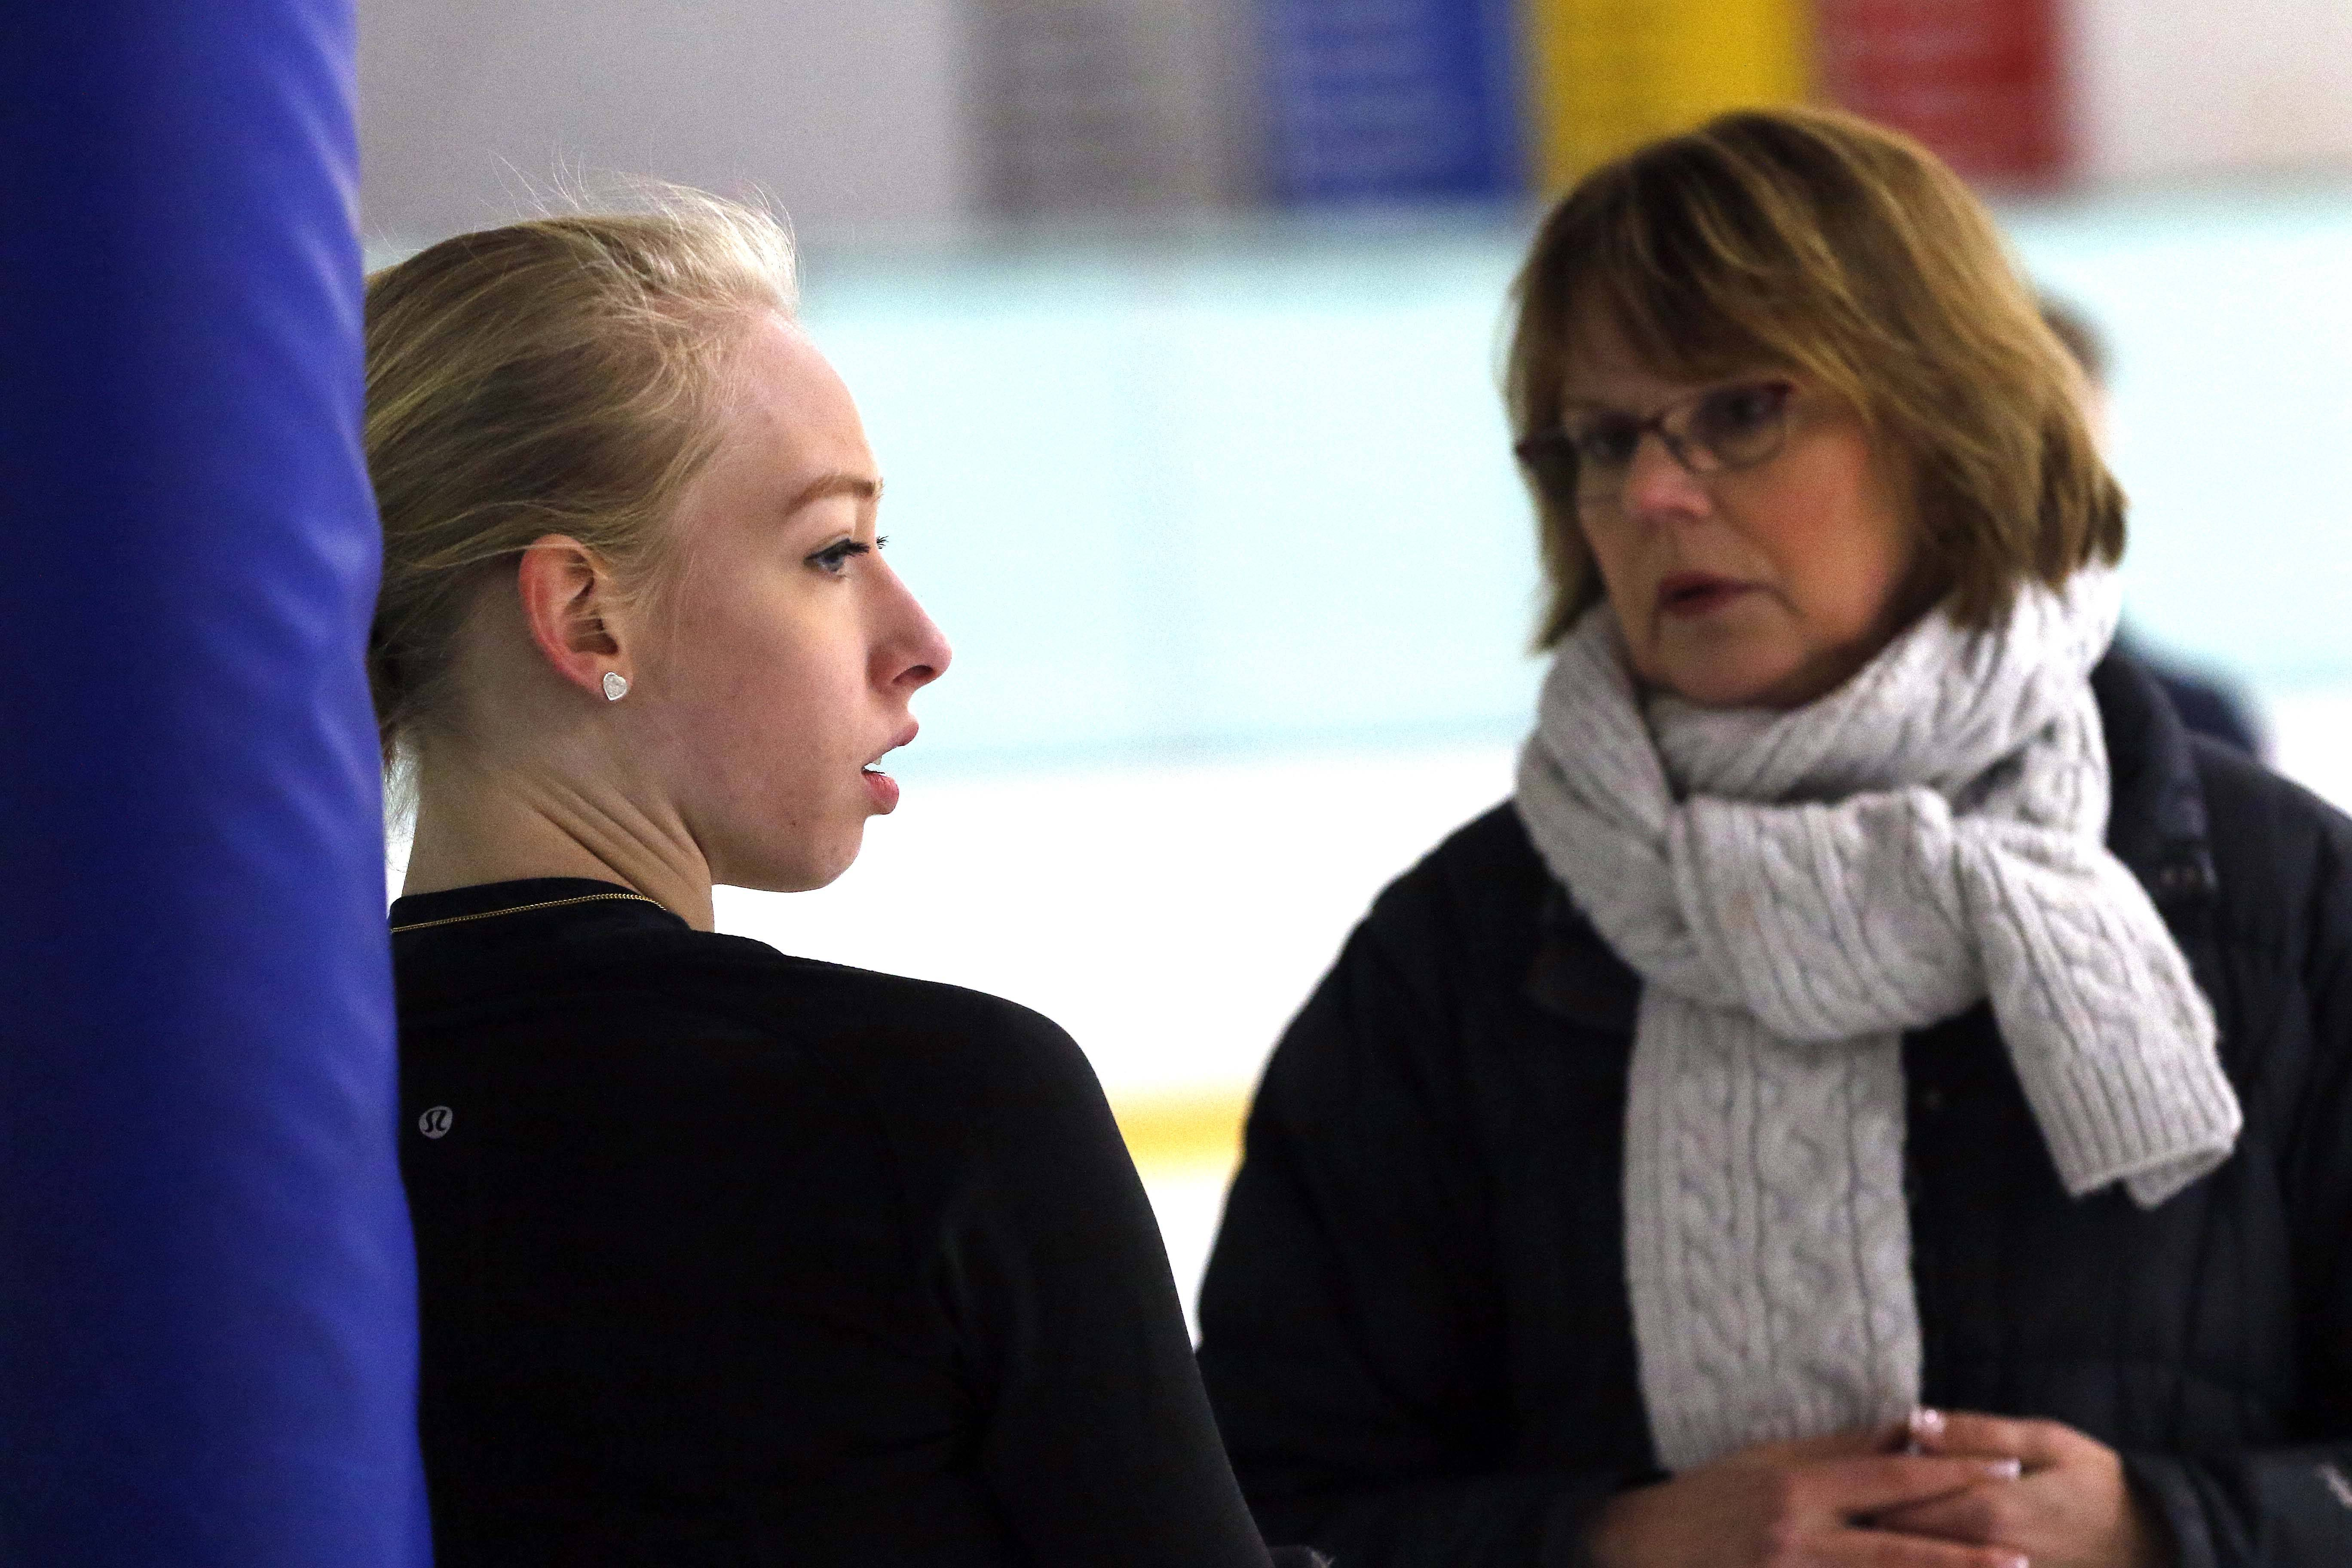 Bradie Tennell works Tuesday with coach Denise Myers at Twin Rinks Ice Pavilion in Buffalo Grove, as they prepare for next month's Winter Olympics in South Korea.